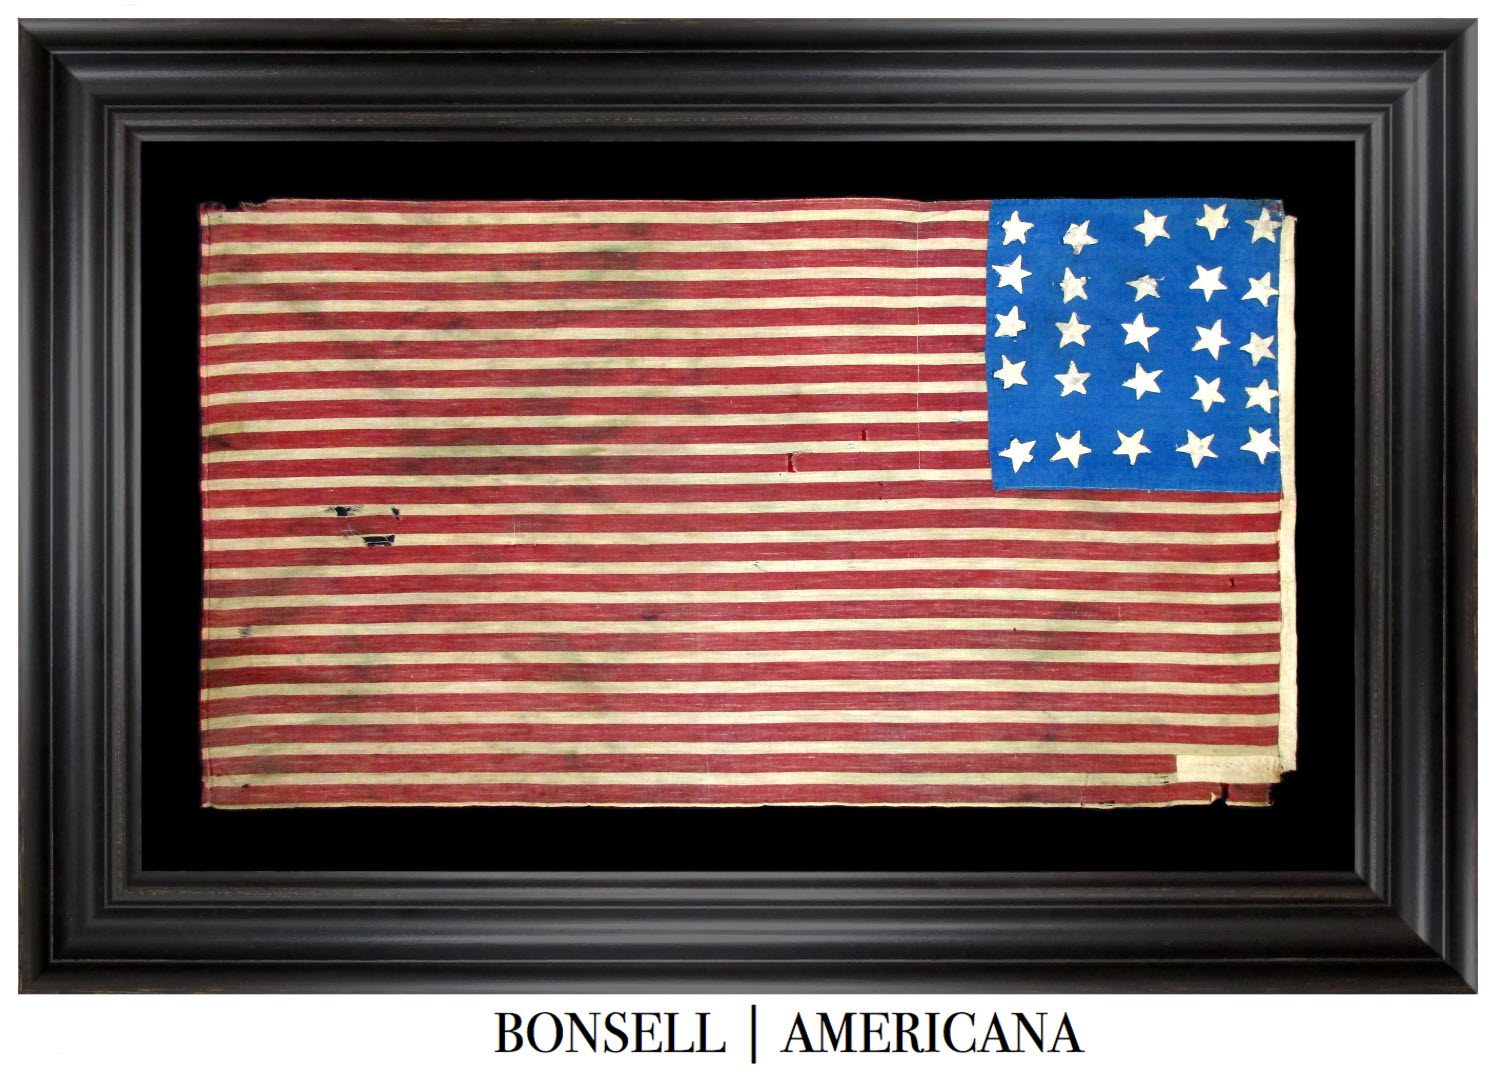 25 Star Antique Exclusionary Flag